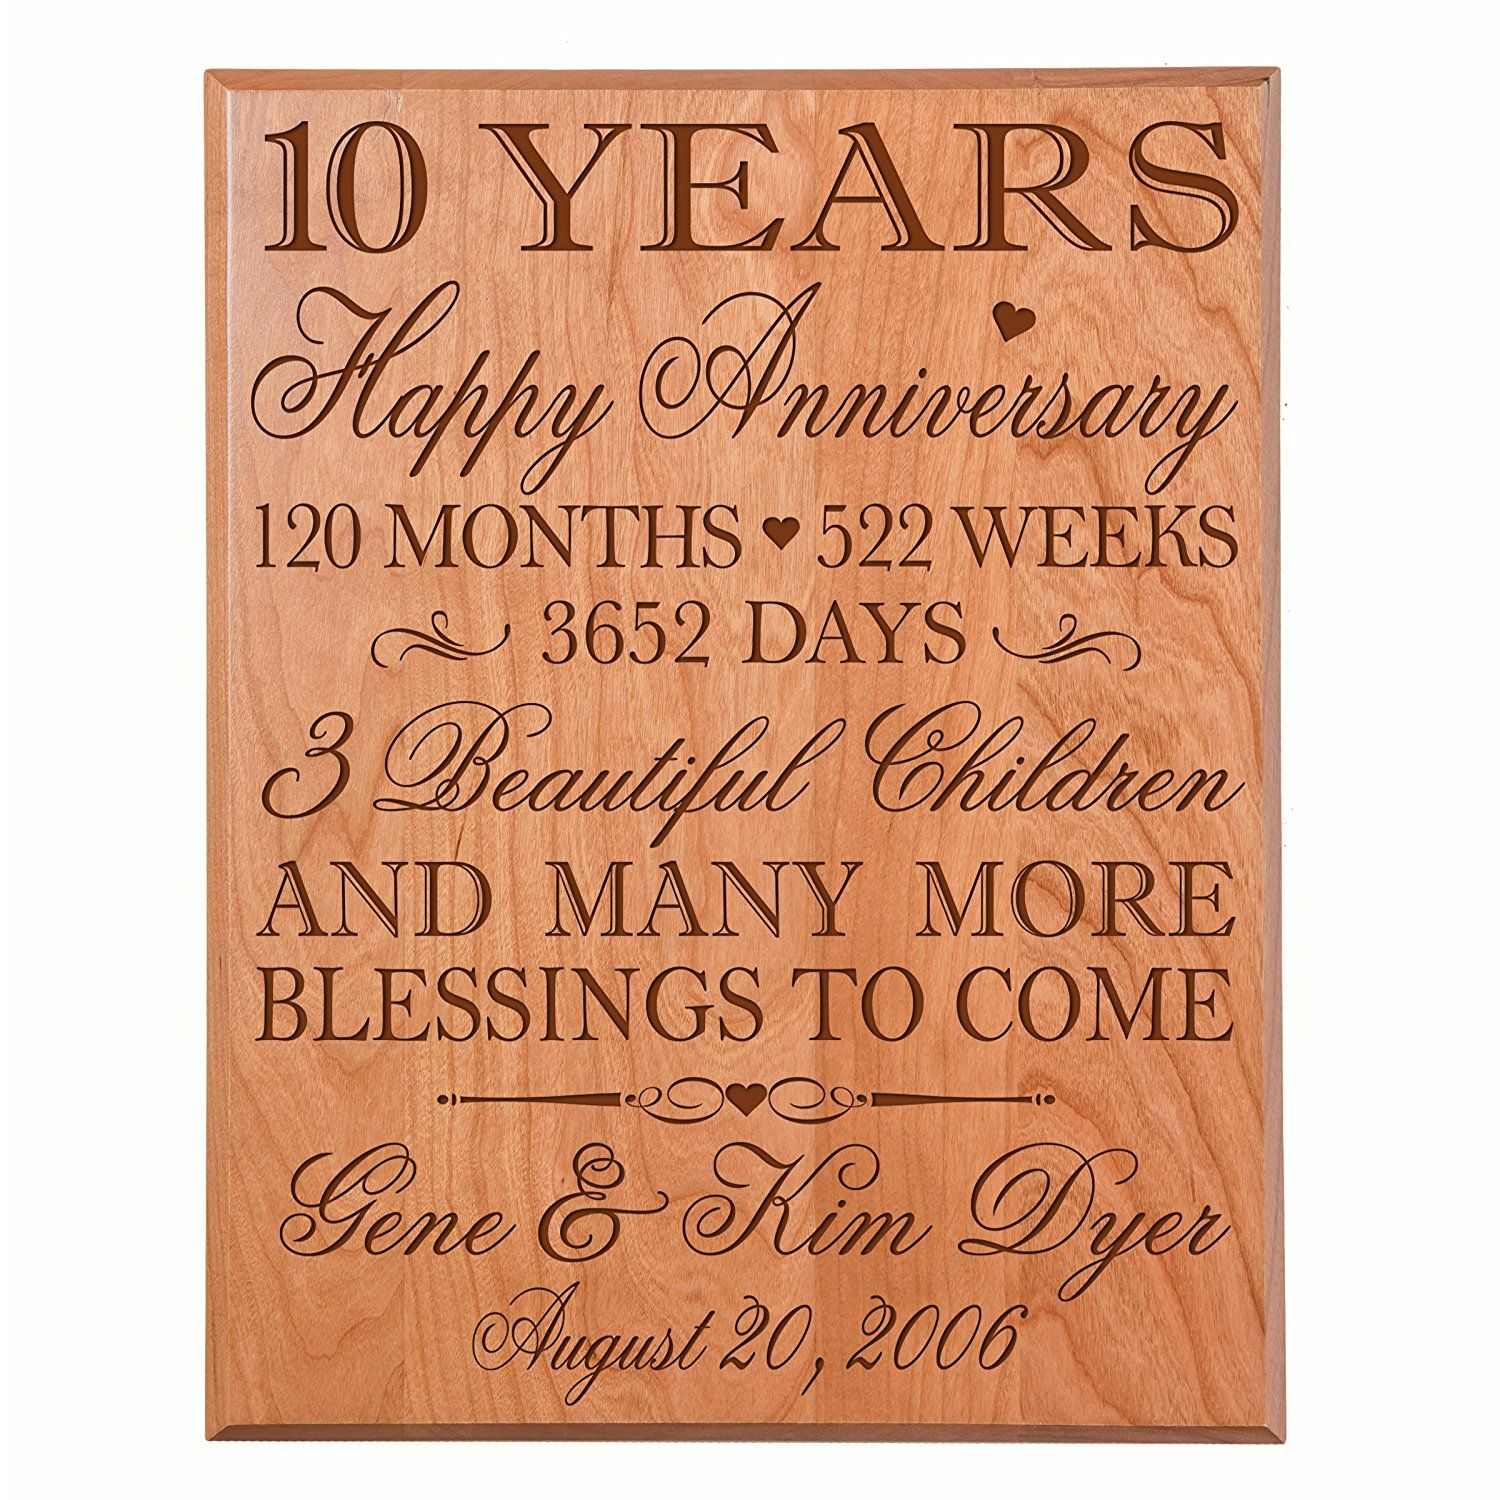 Personalized 10 Year Wedding Anniversary Gifts For Couple 10th Anniversary 40th Anniversary Gifts 10 Year Wedding Anniversary Gift Anniversary Gifts 40 Years